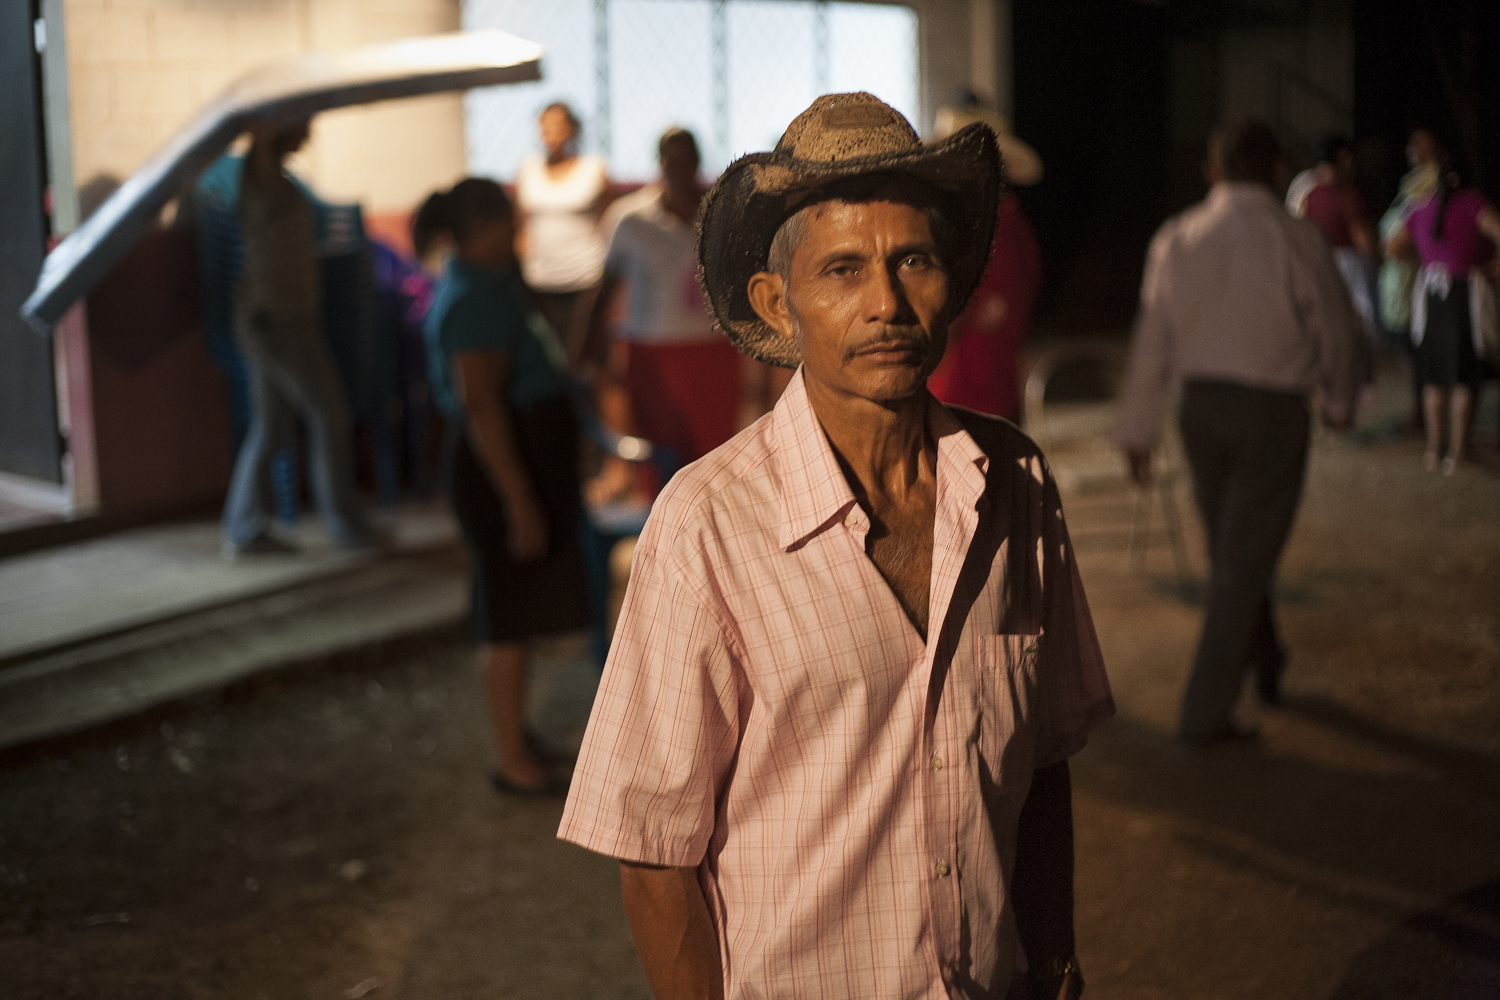 """Vicente Alvarado has been the head of the community organization for the  last 2 years, and give lectures about the history of the civil war  to children of the town. Alvarado, who grew up in Amatitán, calls Óscar  Romero, one of the martyrs of the rebellion cause, """"Jesus Christ on earth."""""""